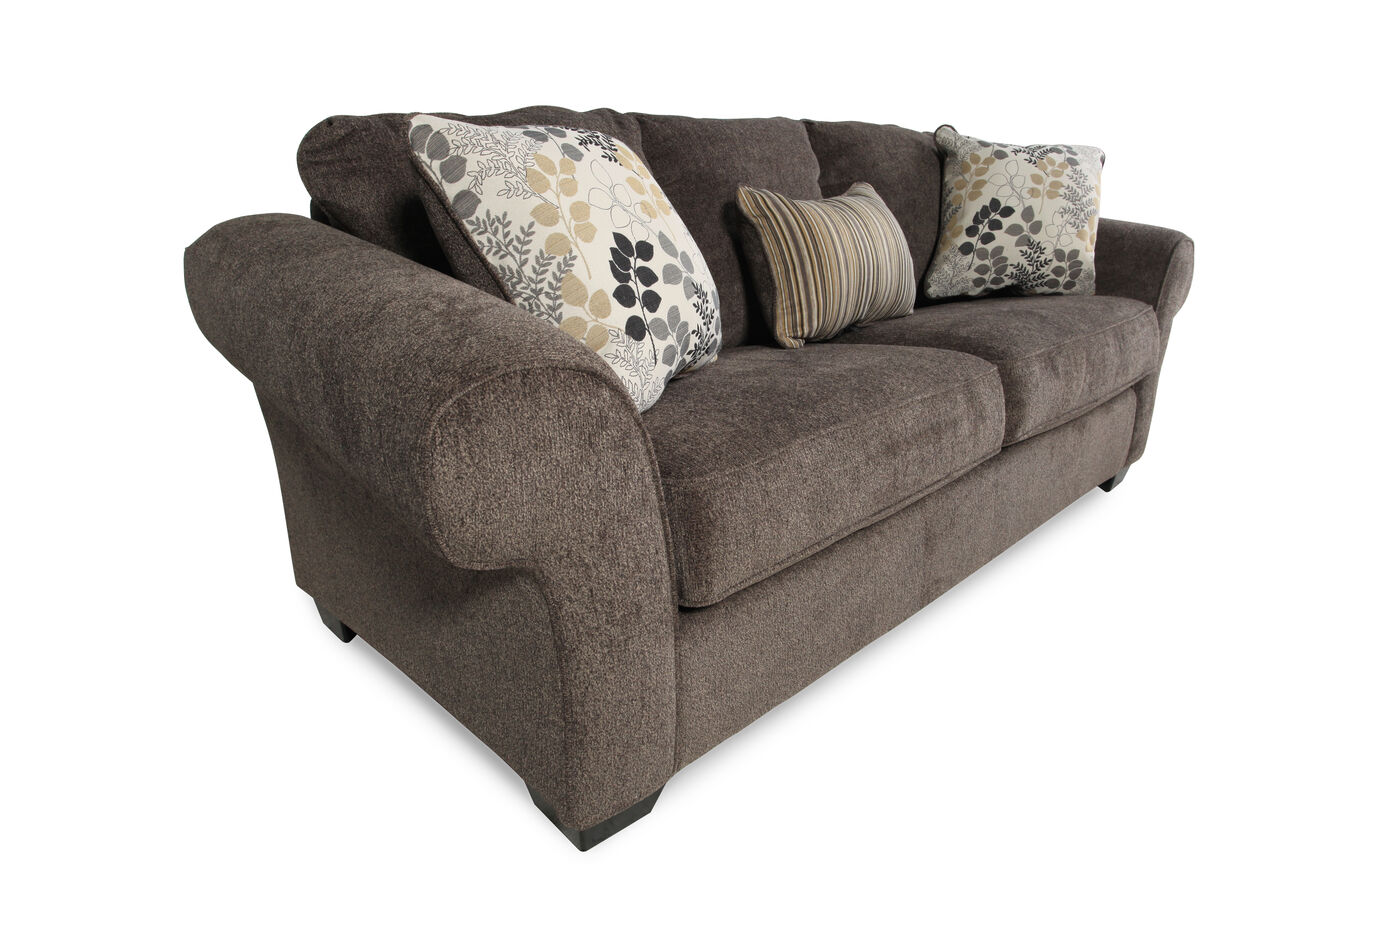 92 rolled arm sofa in charcoal gray mathis brothers furniture. Black Bedroom Furniture Sets. Home Design Ideas